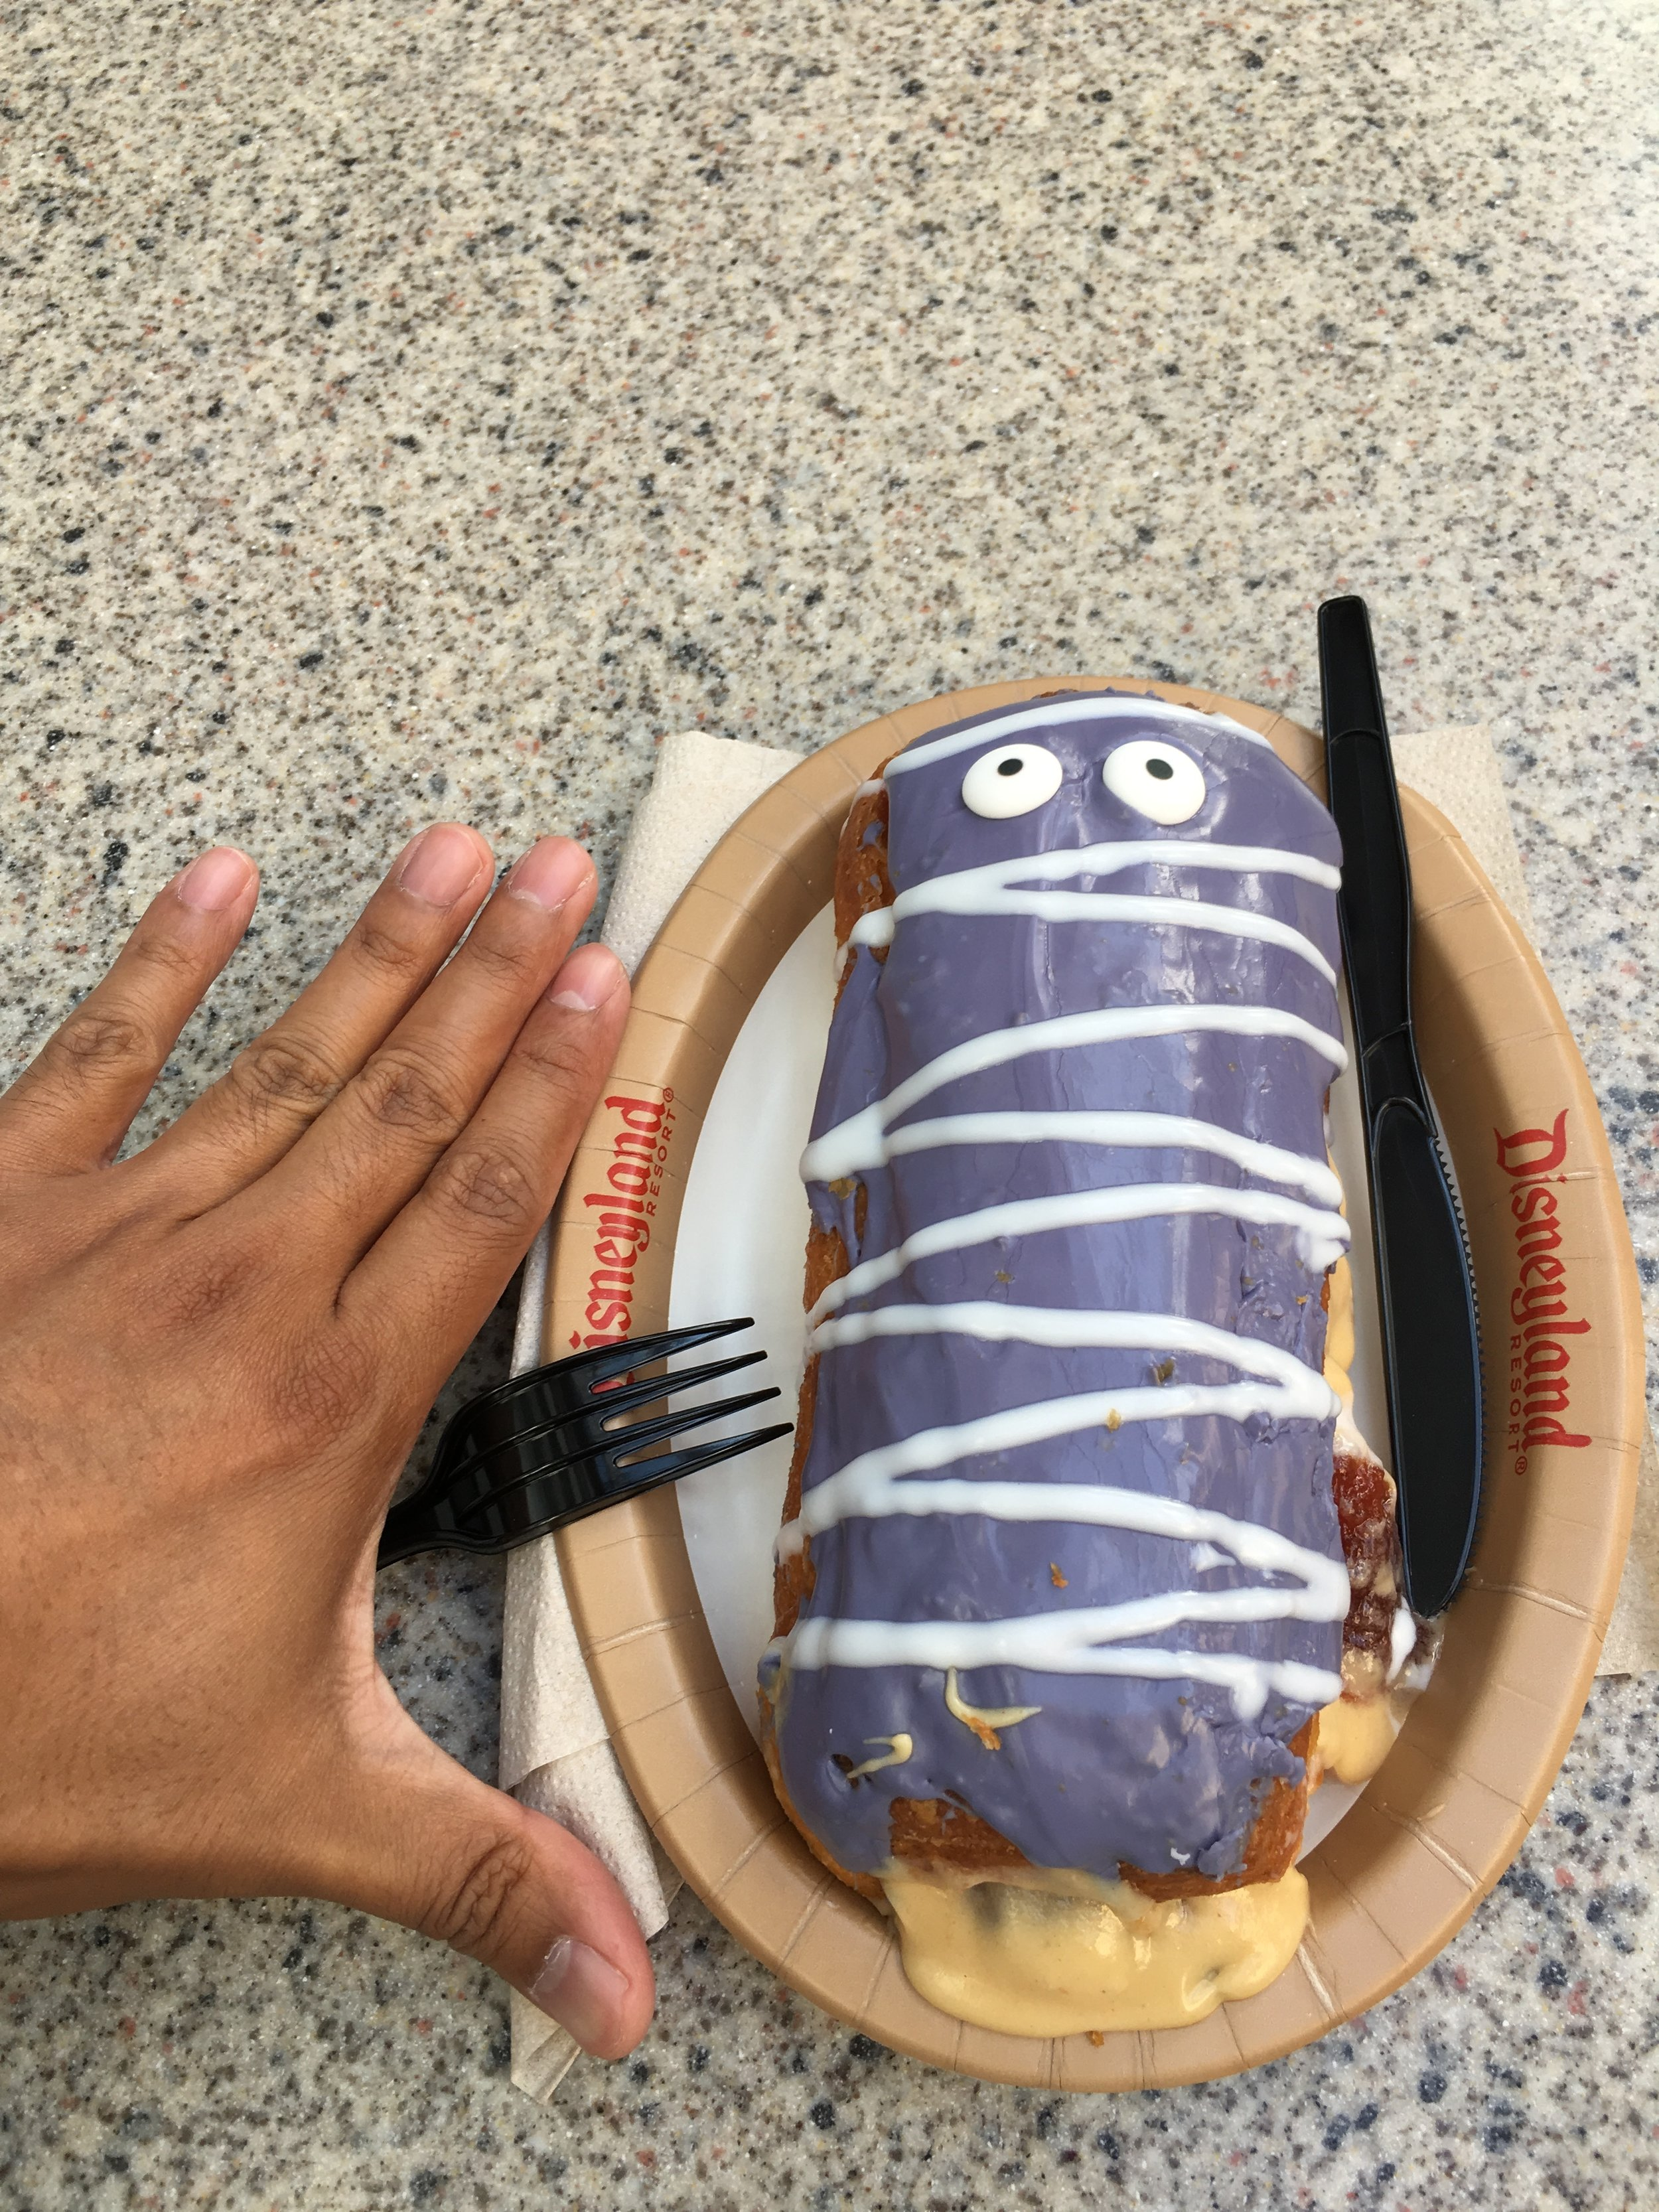 Peanut Butter and Jelly Cronut from Schmoozies in DCA. My Hand is next to it to show the size.